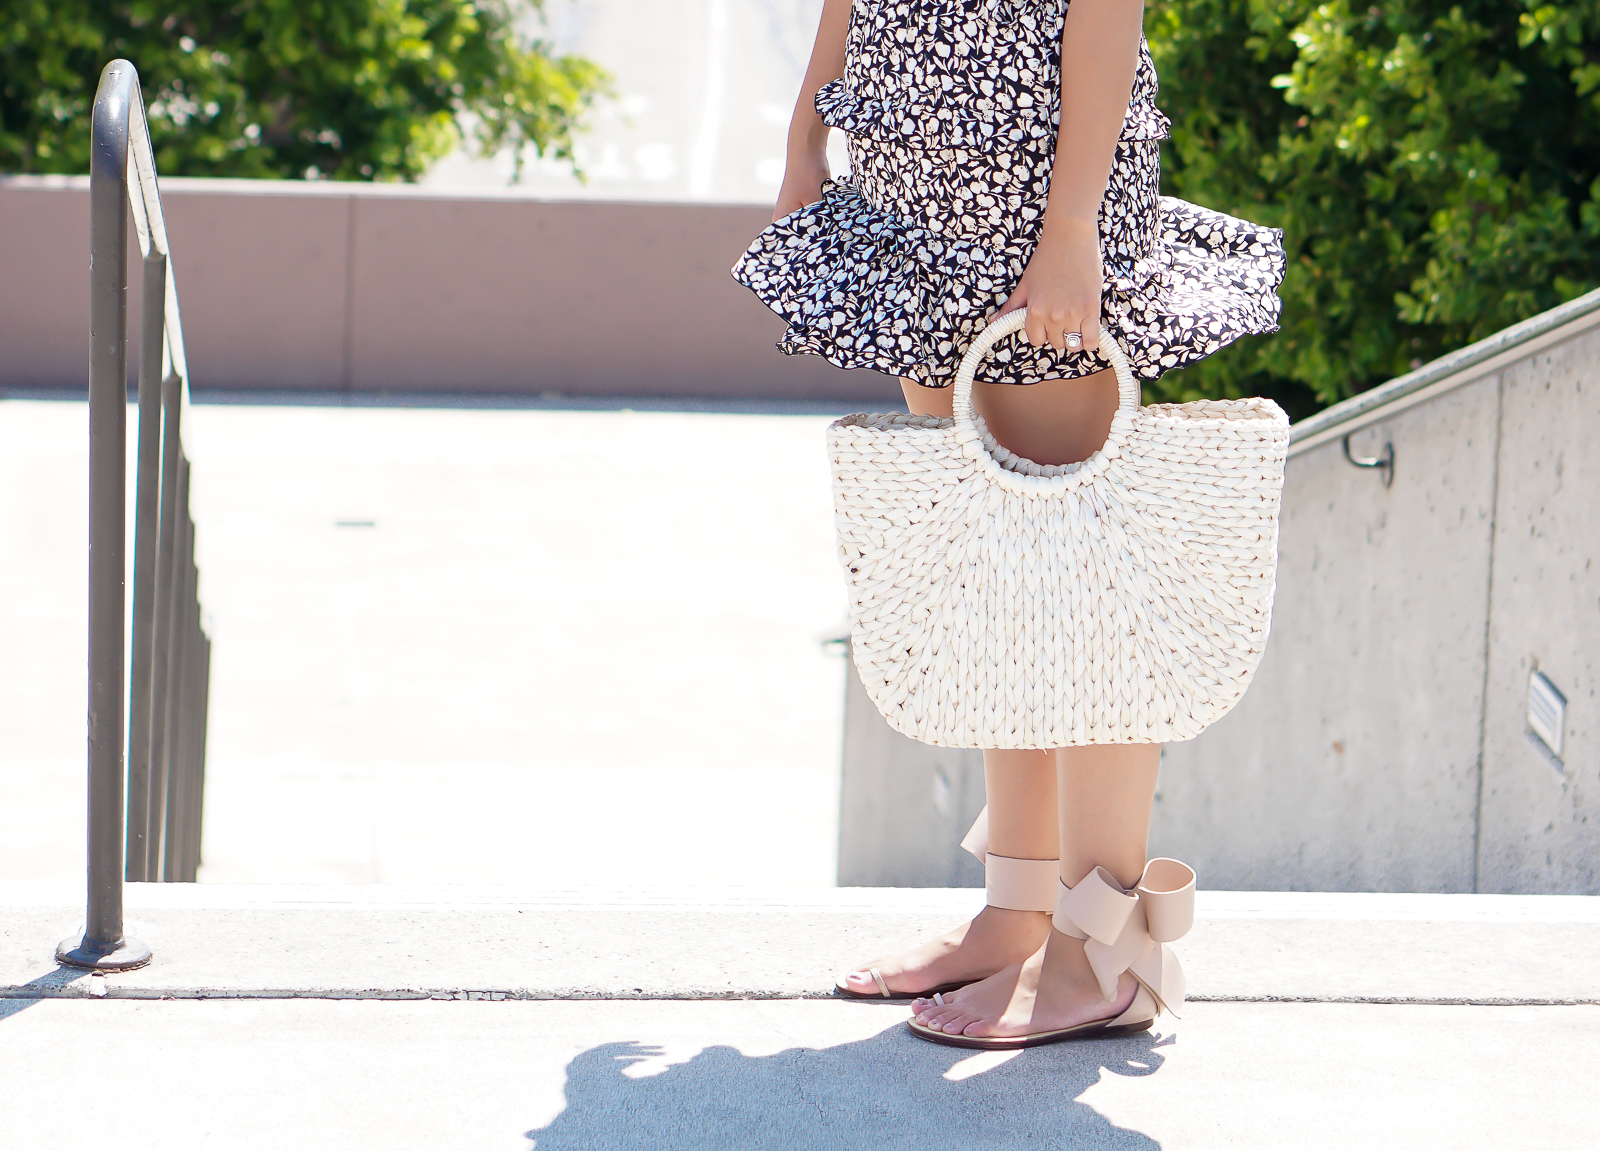 Amina Abdul Jillil Bow Sandals, Summer Straw Tote Bag, Who What Wear Ruffle Skirt, Summer Trends,